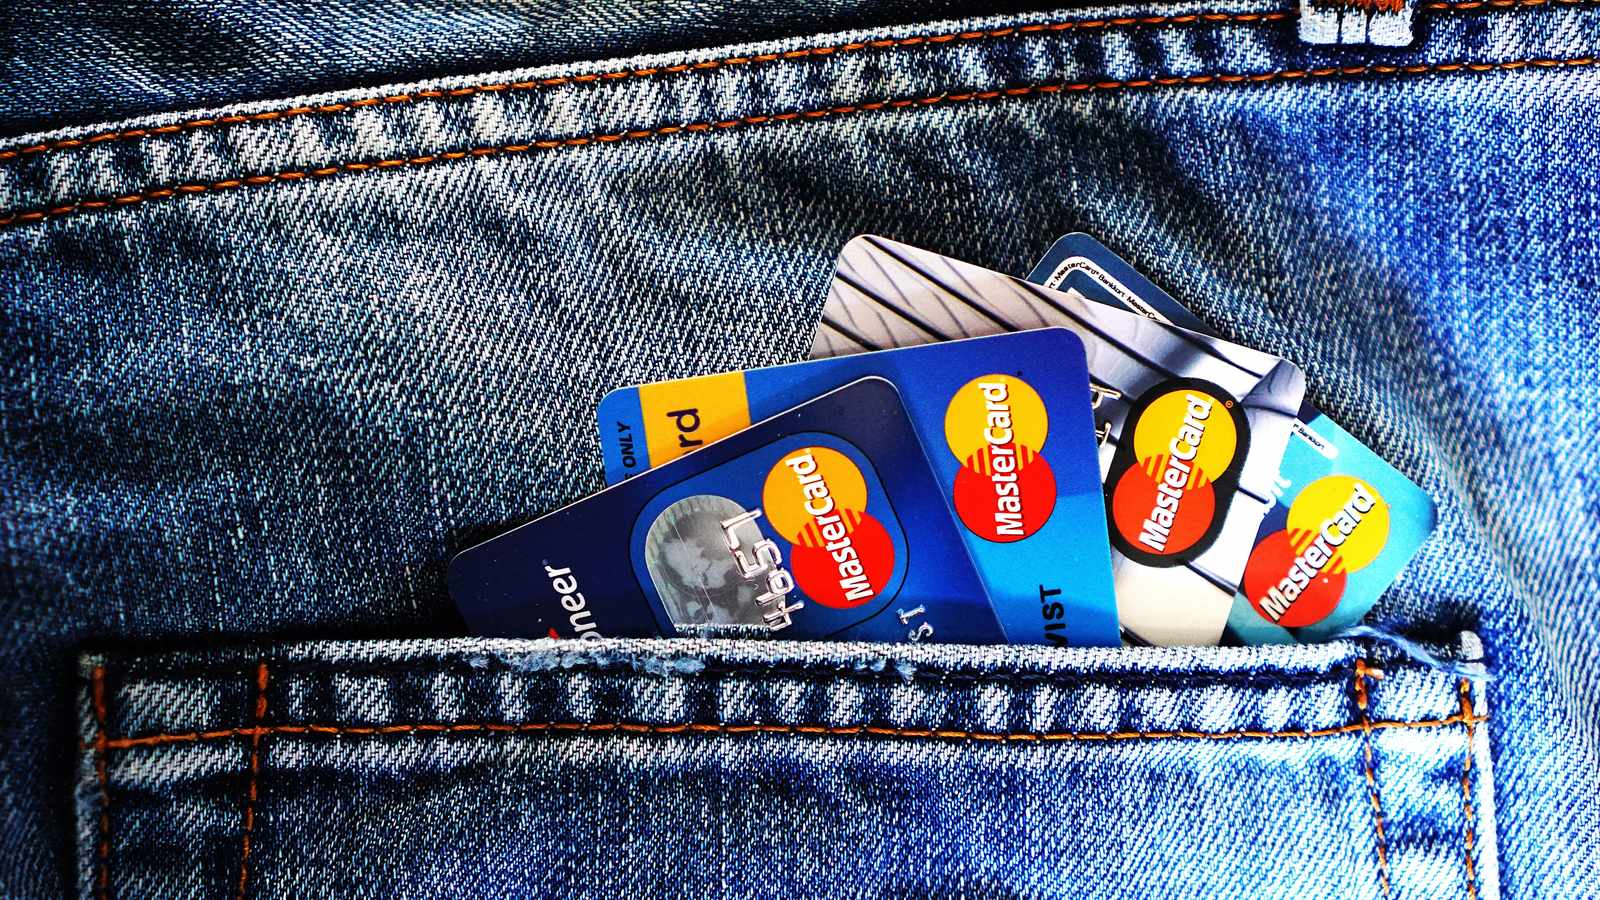 REK YOUR CHEQUE: What is a credit score?